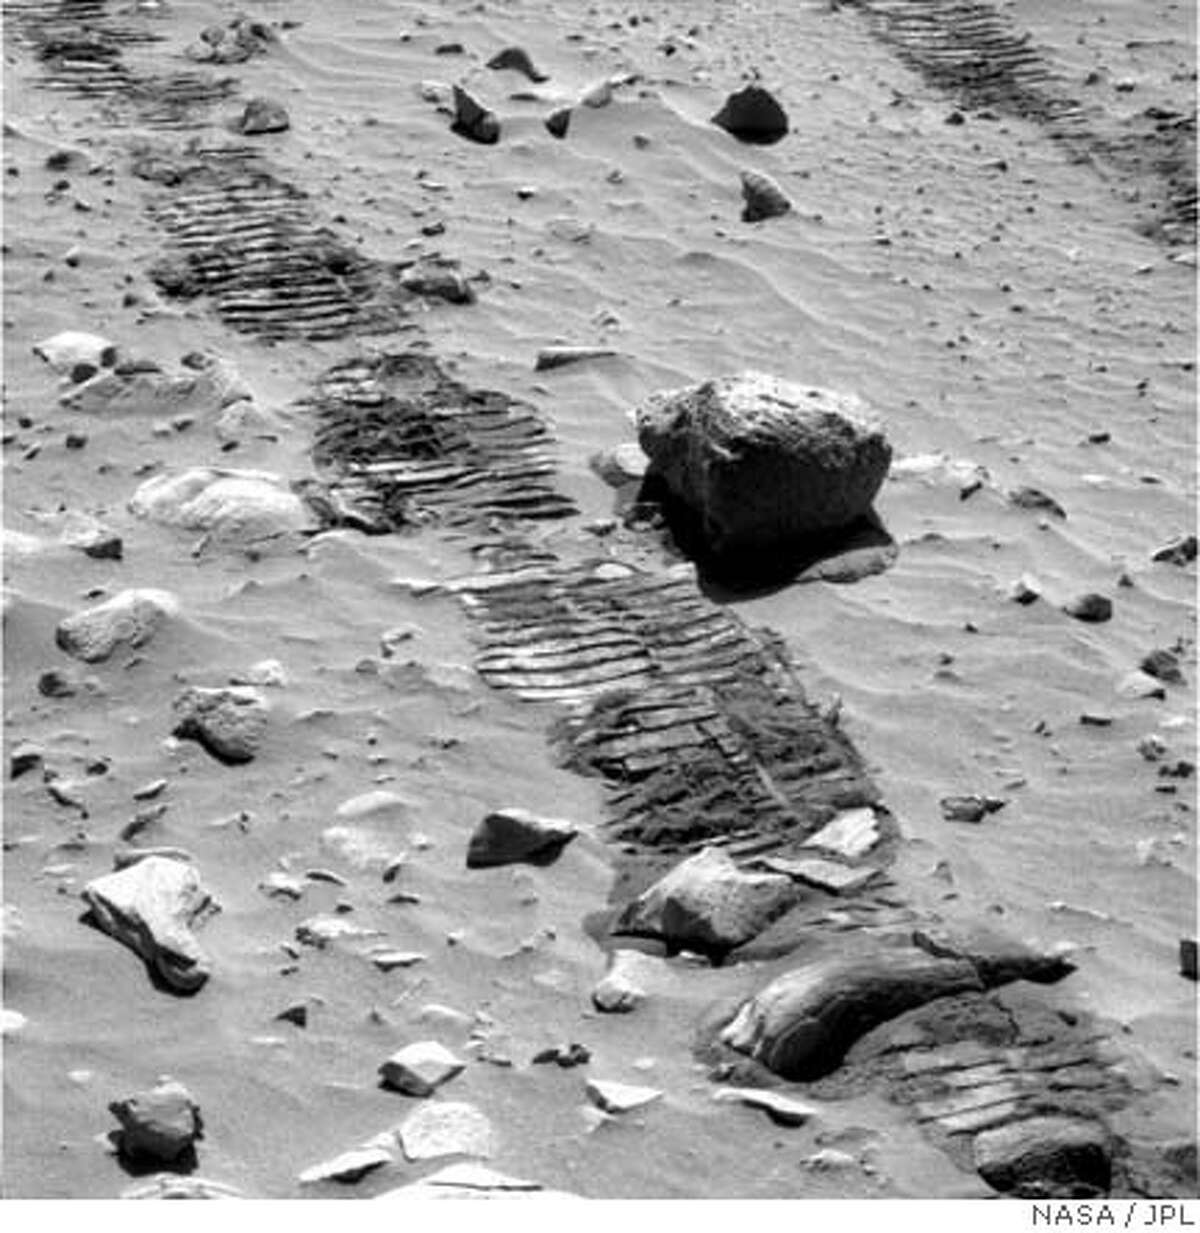 MARS04.JPG Track marks left by the Spirit Rover. Courtesy of Cornell/JPL/NASA Ran on: 08-09-2004 Looking for all the world like the track marks of a dune buggy on a California beach, these tracks of the Spirit rover on Mars reveal every parallel indentation of the wheels metal treads as they roll over a small rock and the finely drifted sand forming soft ripples from the Martian winds. Ran on: 08-09-2004